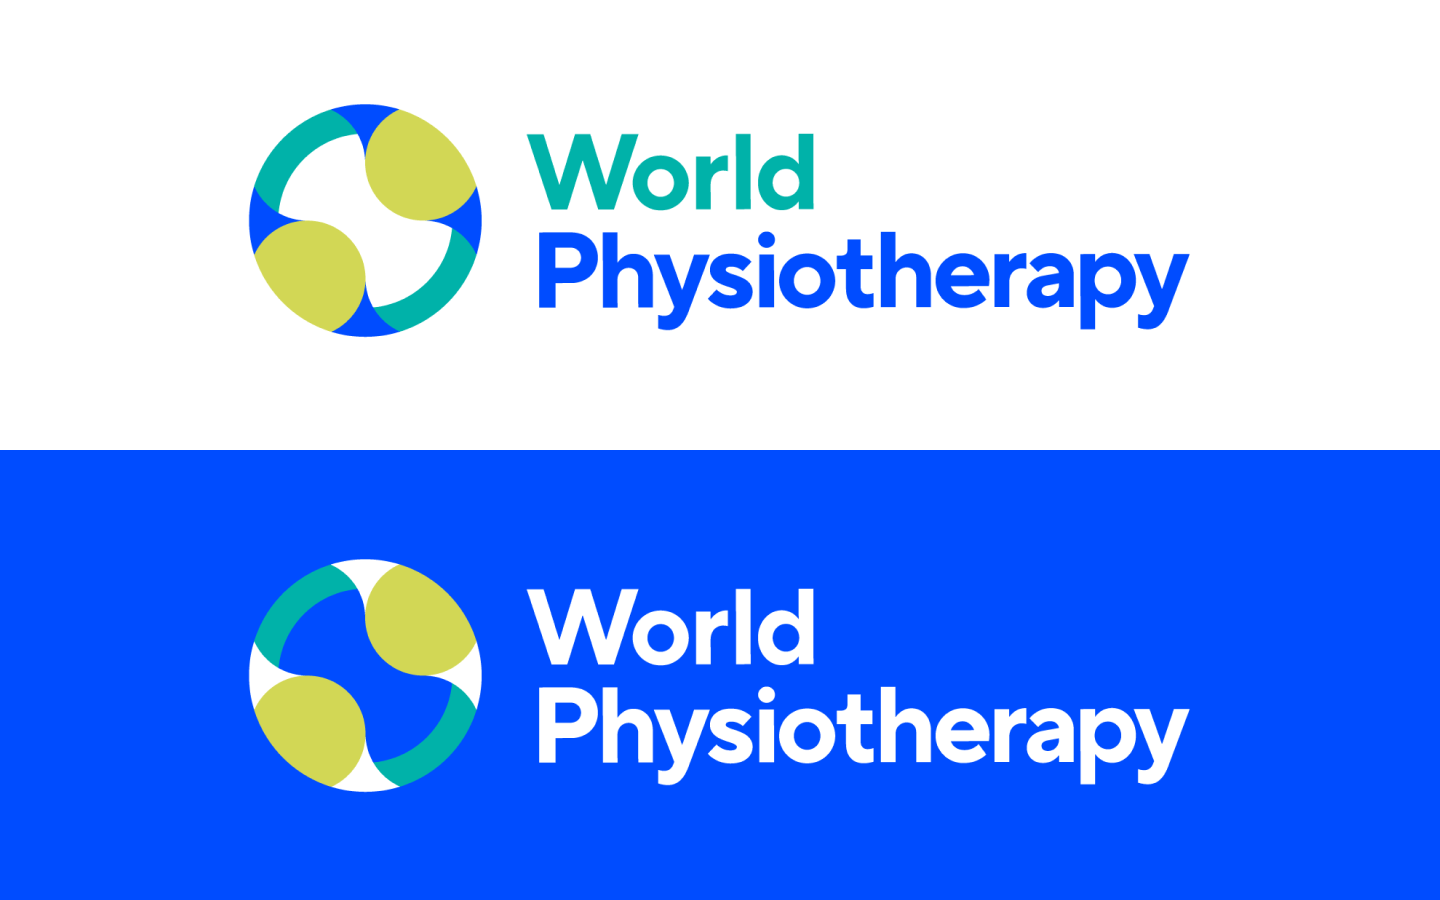 The World Physiotherapy logo